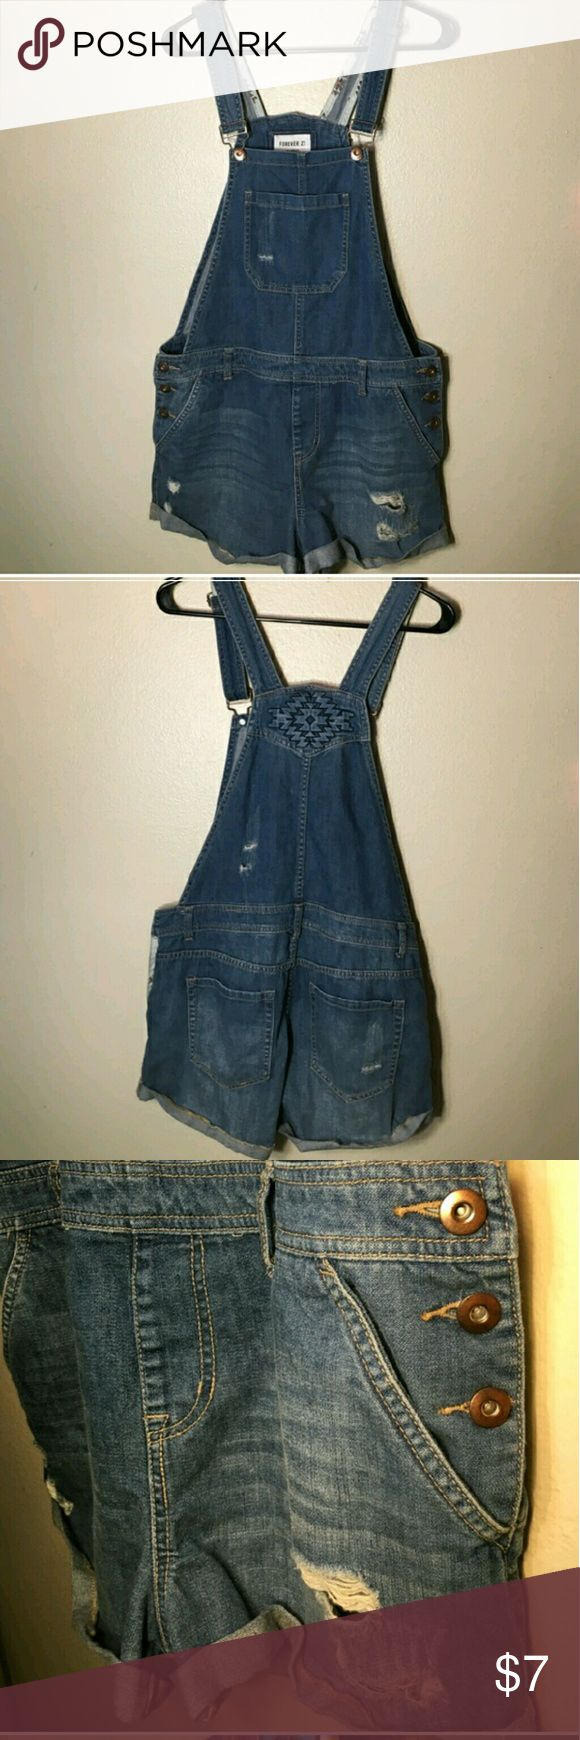 Distressed denim overalls shorts Great condition distressed Aztec design overall shorts sz XL Forever 21 Shorts Jean Shorts